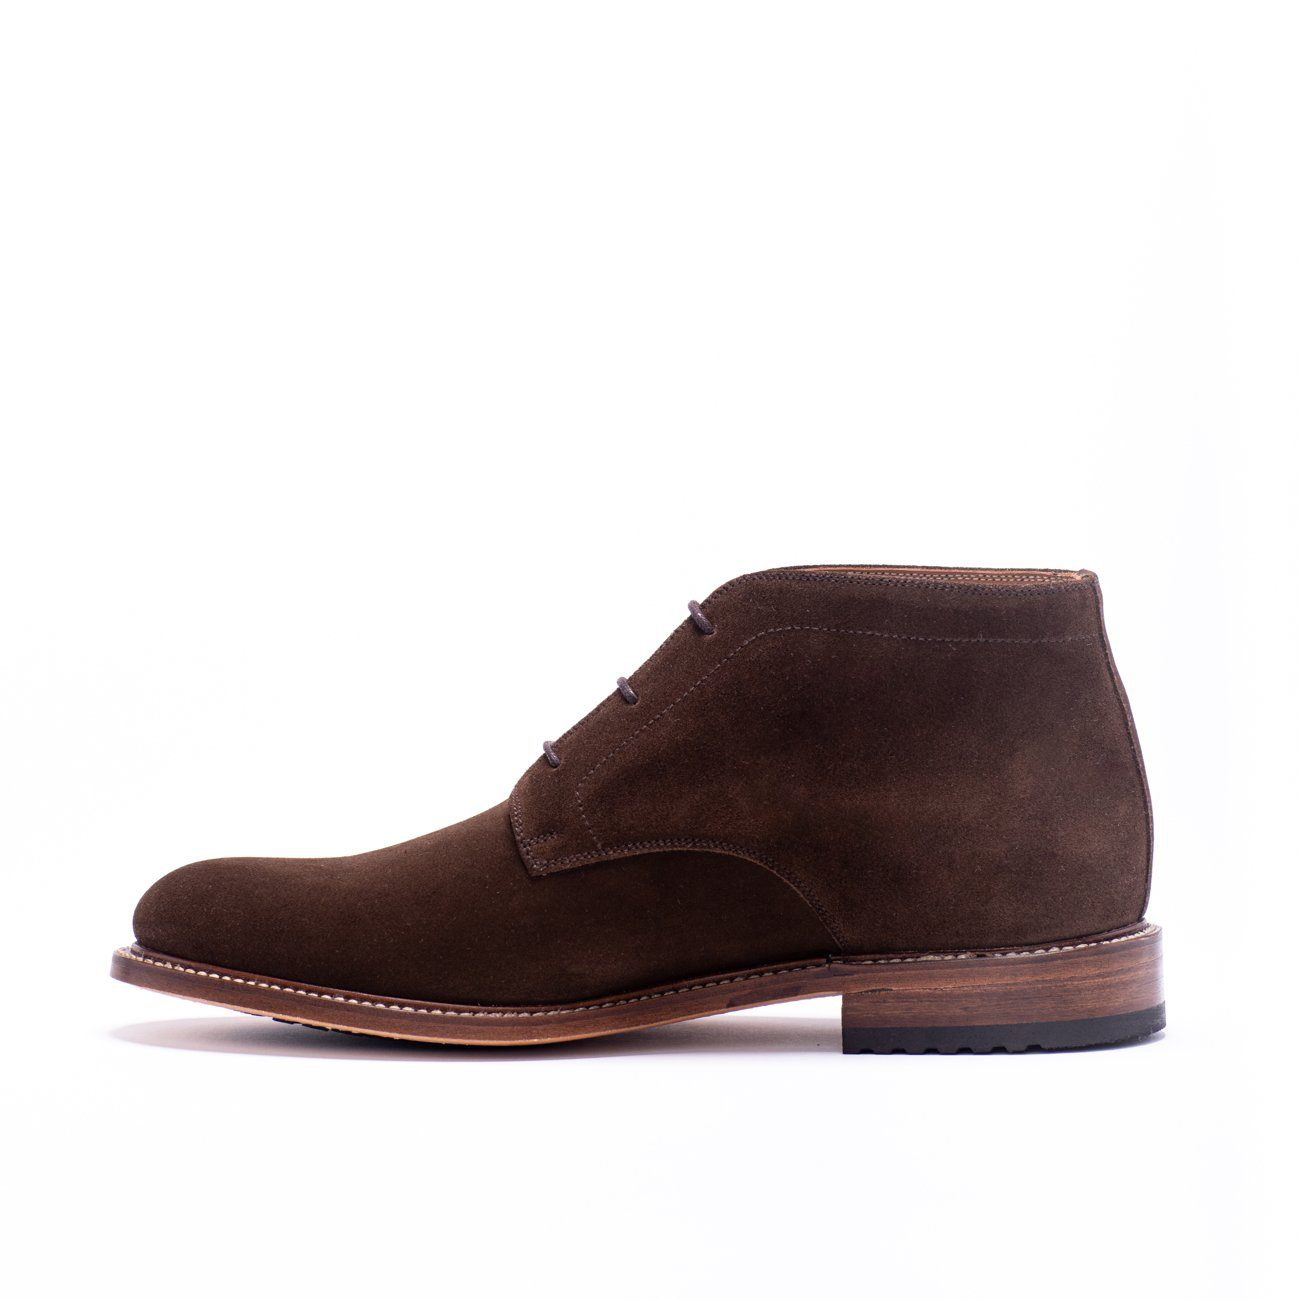 Mens Redseed Chukka Brown Suede Boot - Ranch Road Boots™